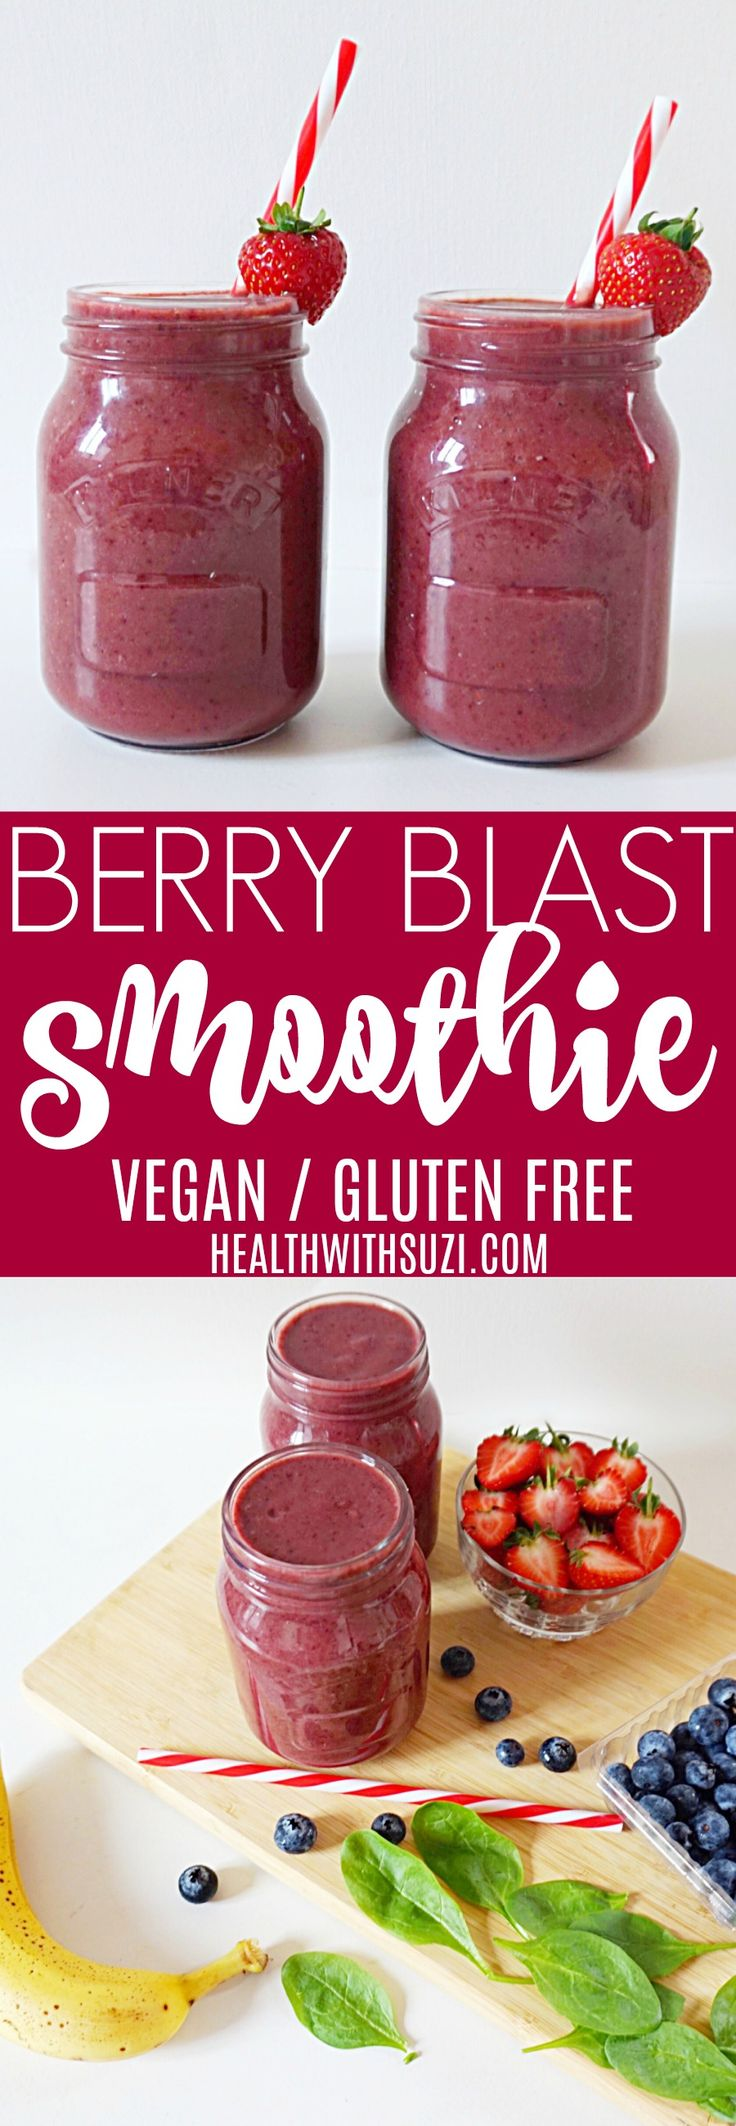 This is the perfect healthy breakfast smoothie! It's delicious, great for weight loss and it's full of vitamins and minerals! I love it!